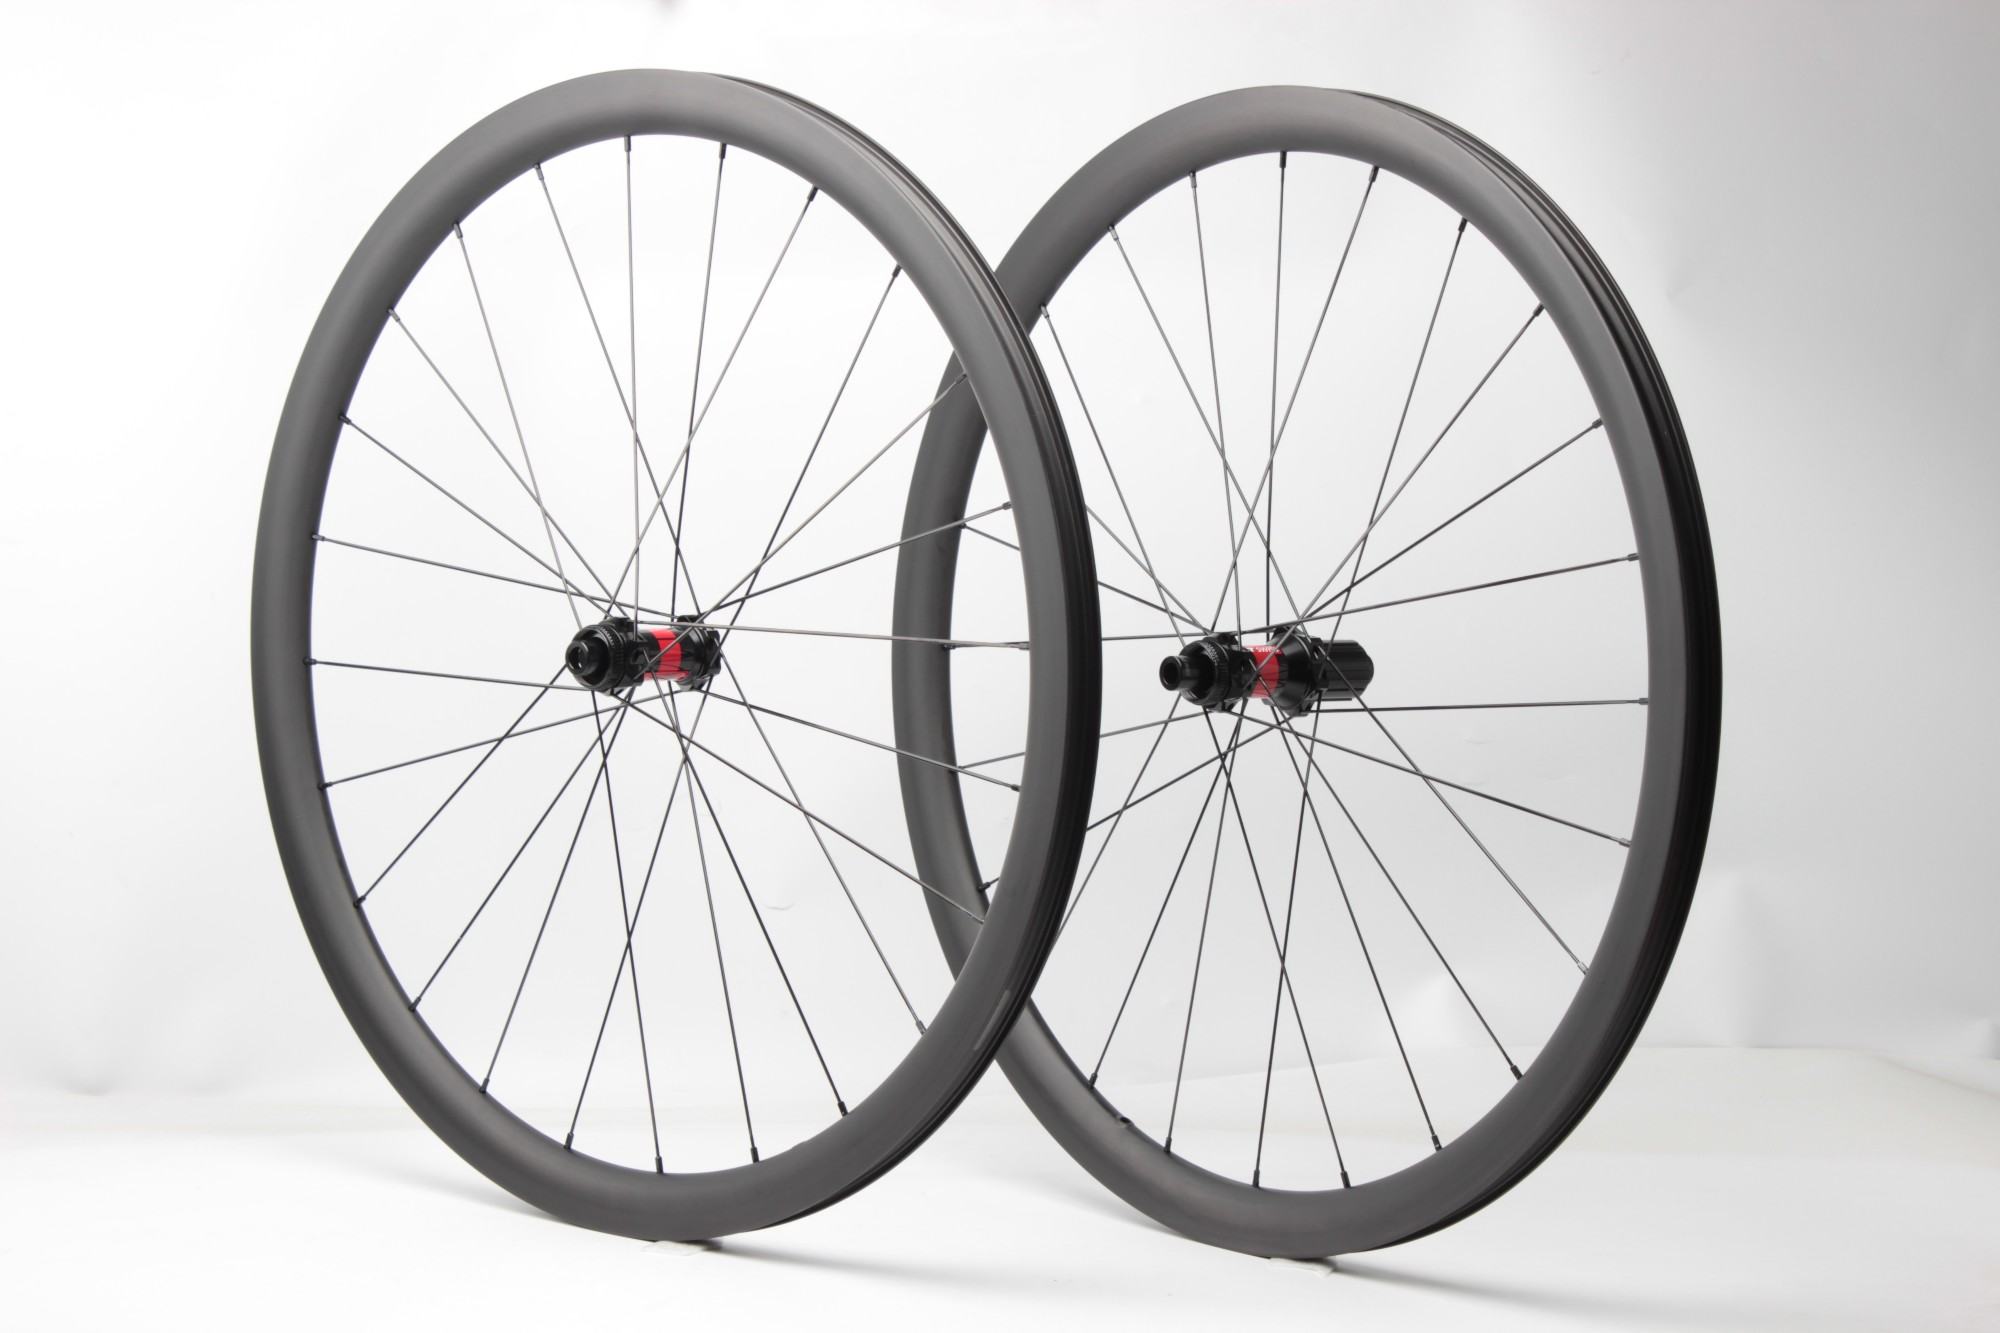 700C full carbon cyclocross wheelset Manufacturers, 700C full carbon cyclocross wheelset Factory, Supply 700C full carbon cyclocross wheelset